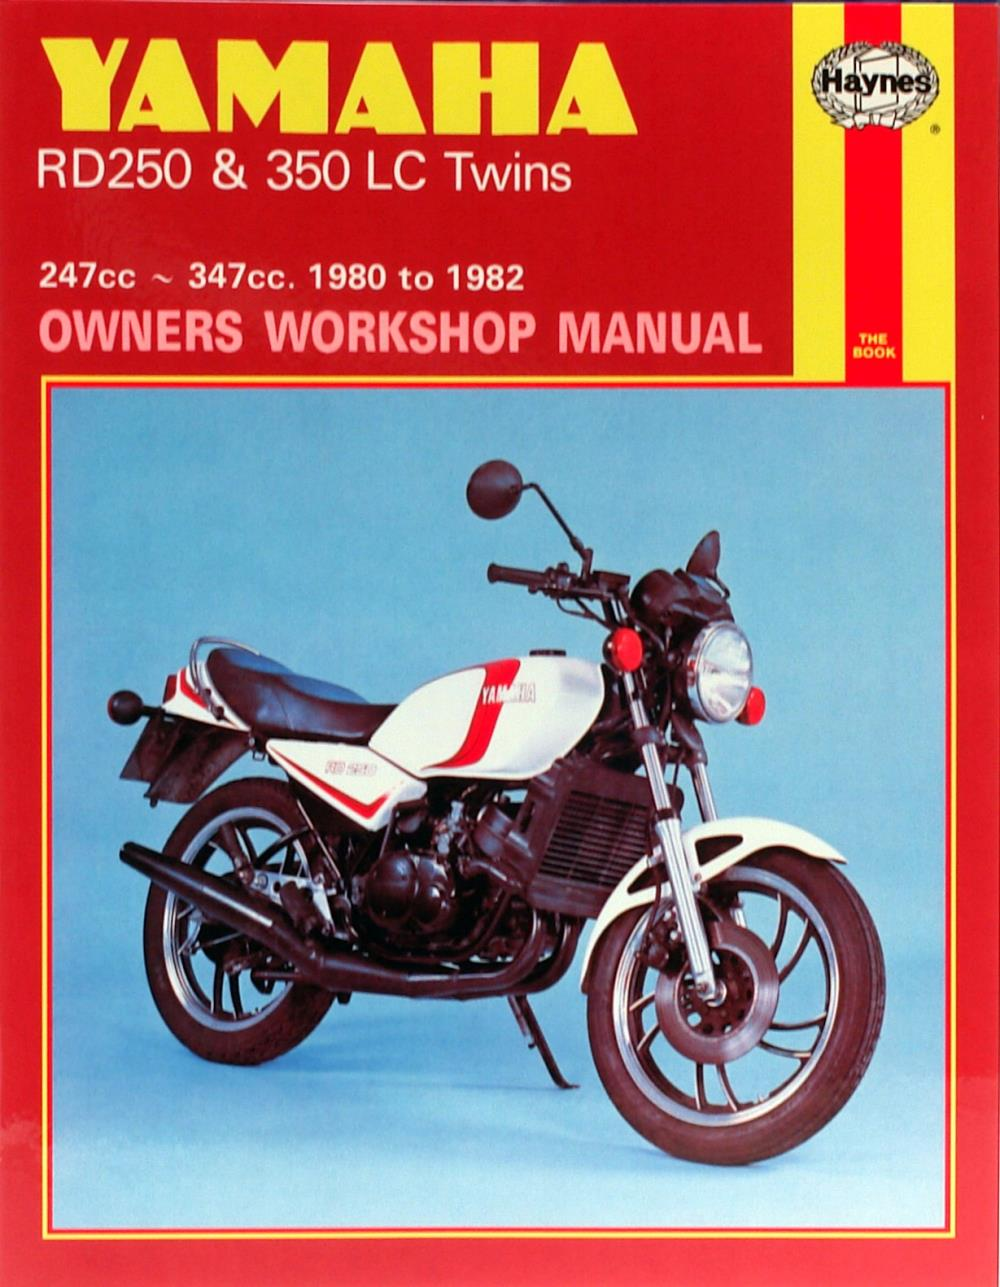 Yamaha Rd 50 M Manual | Wiring Liry on honda wiring diagram, yamaha ttr 125 wiring diagram, yamaha motorcycle wiring diagrams, yamaha 650 wiring diagram, yamaha xt 550 wiring diagram, yamaha rd 350 forum, yamaha dt 125 wiring diagram, yamaha rhino ignition wiring diagram, yamaha road star wiring diagram, yamaha qt 50 wiring diagram, yamaha warrior 350 carburetor diagram, yamaha tt 250 wiring diagram, yamaha dt 100 wiring diagram, yamaha rd 350 carburetor, yamaha rd 350 wheels, titan generator wiring diagram, yamaha xt 500 wiring diagram, yamaha xs 360 wiring diagram, yamaha grizzly 600 wiring diagram, charging system wiring diagram,